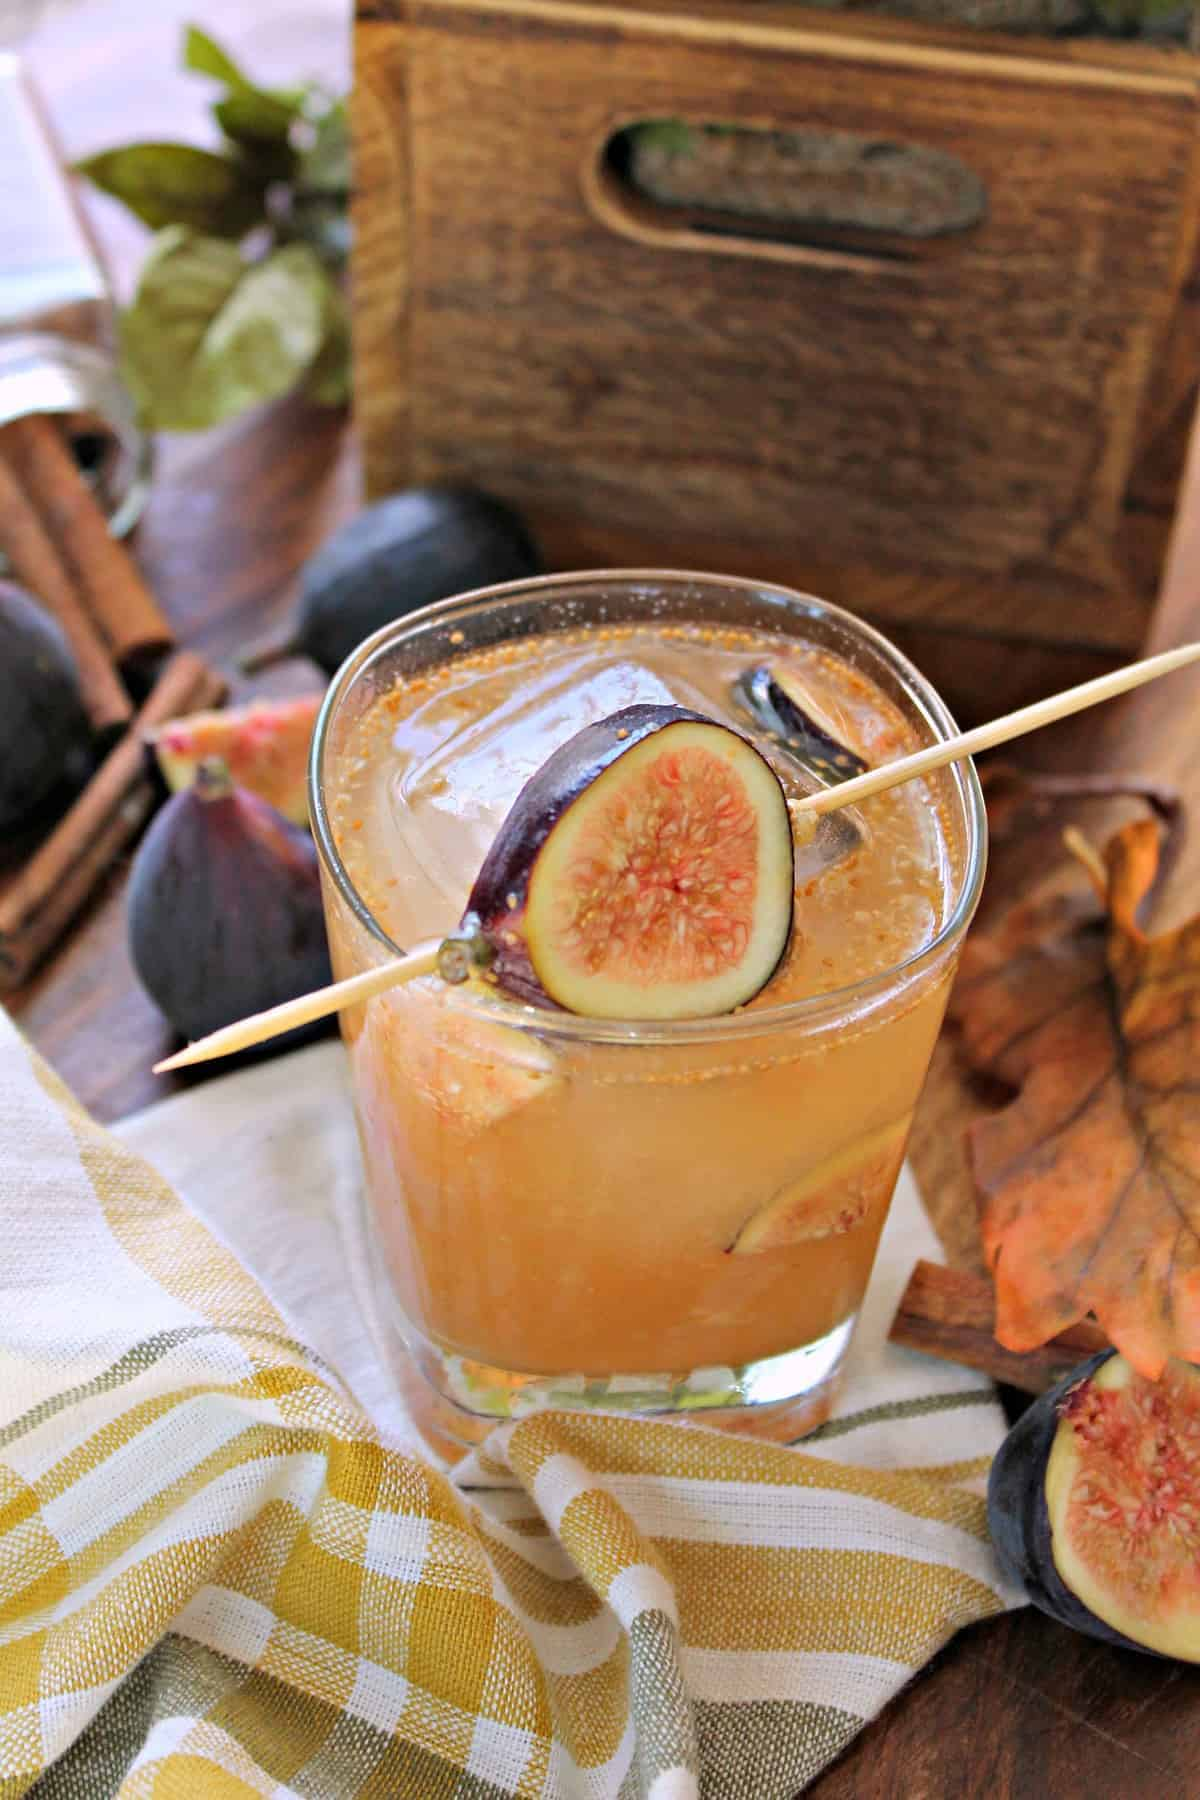 This delicious fig cocktail is a sweet combination of cinnamon, bourbon, and a simple honey syrup. It's a perfect autumn drink